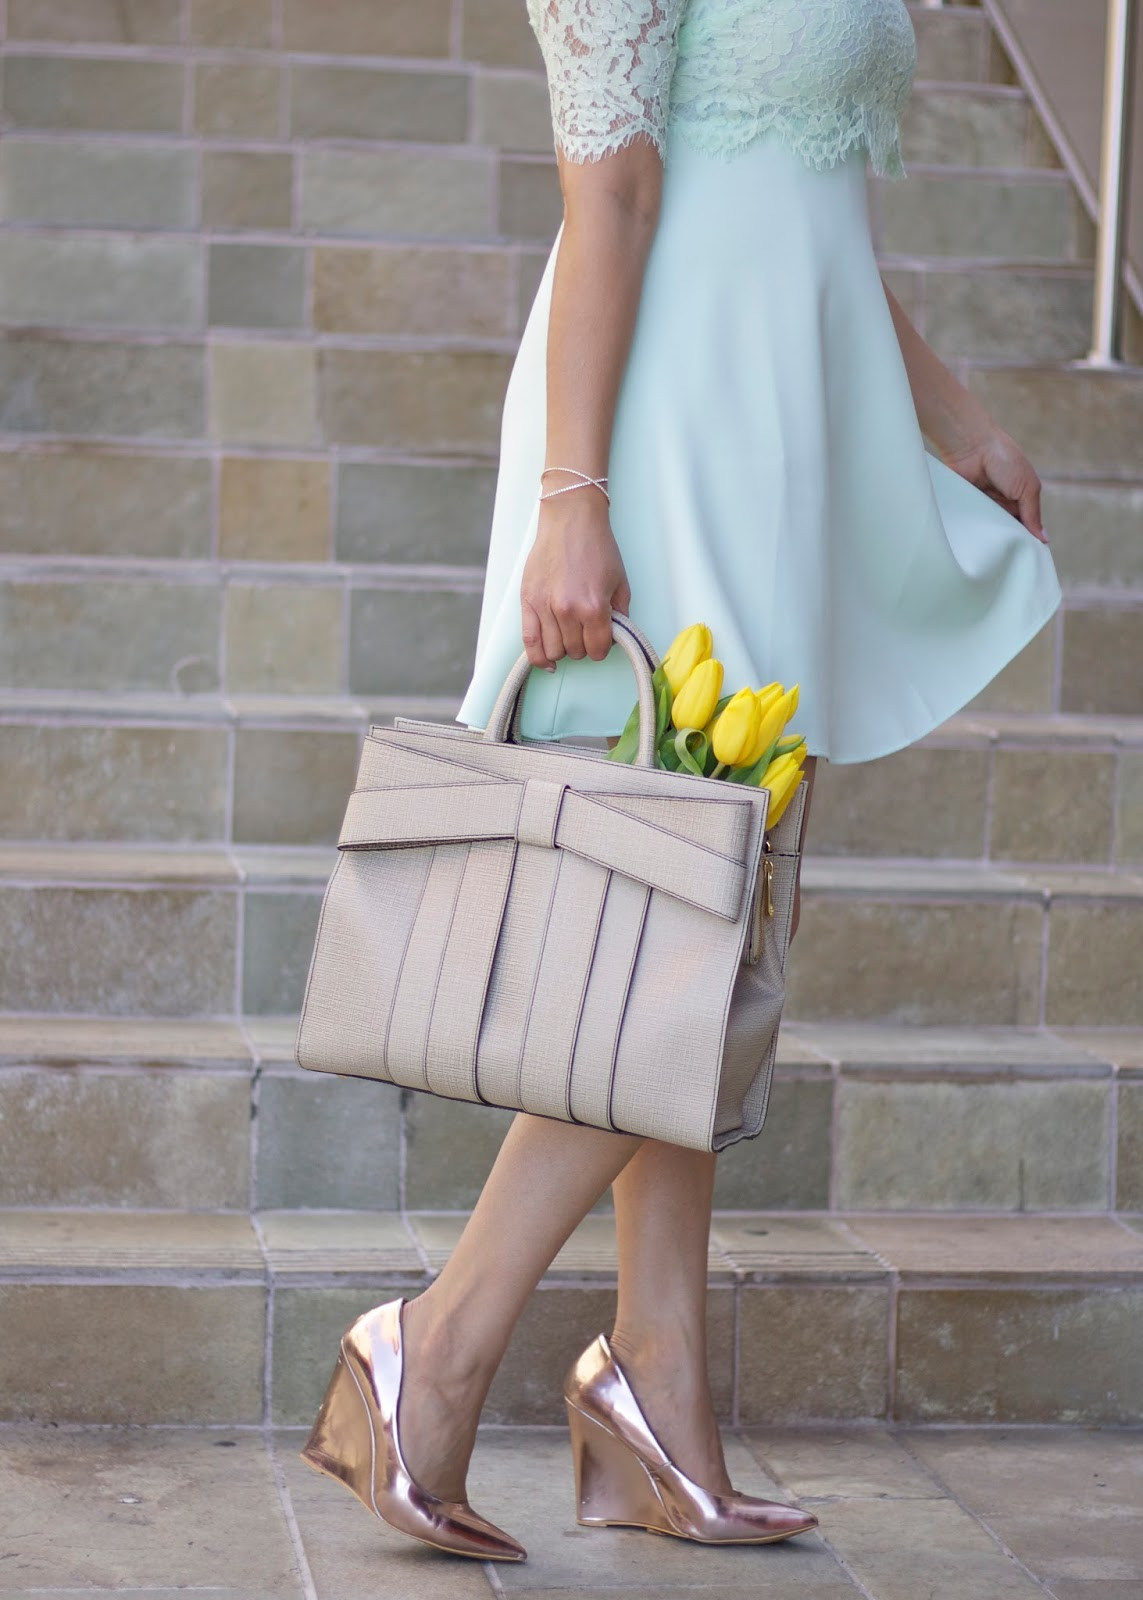 Girly Spring Accessories, metallic heels, rose gold wedge heels, zac posen bow handbag